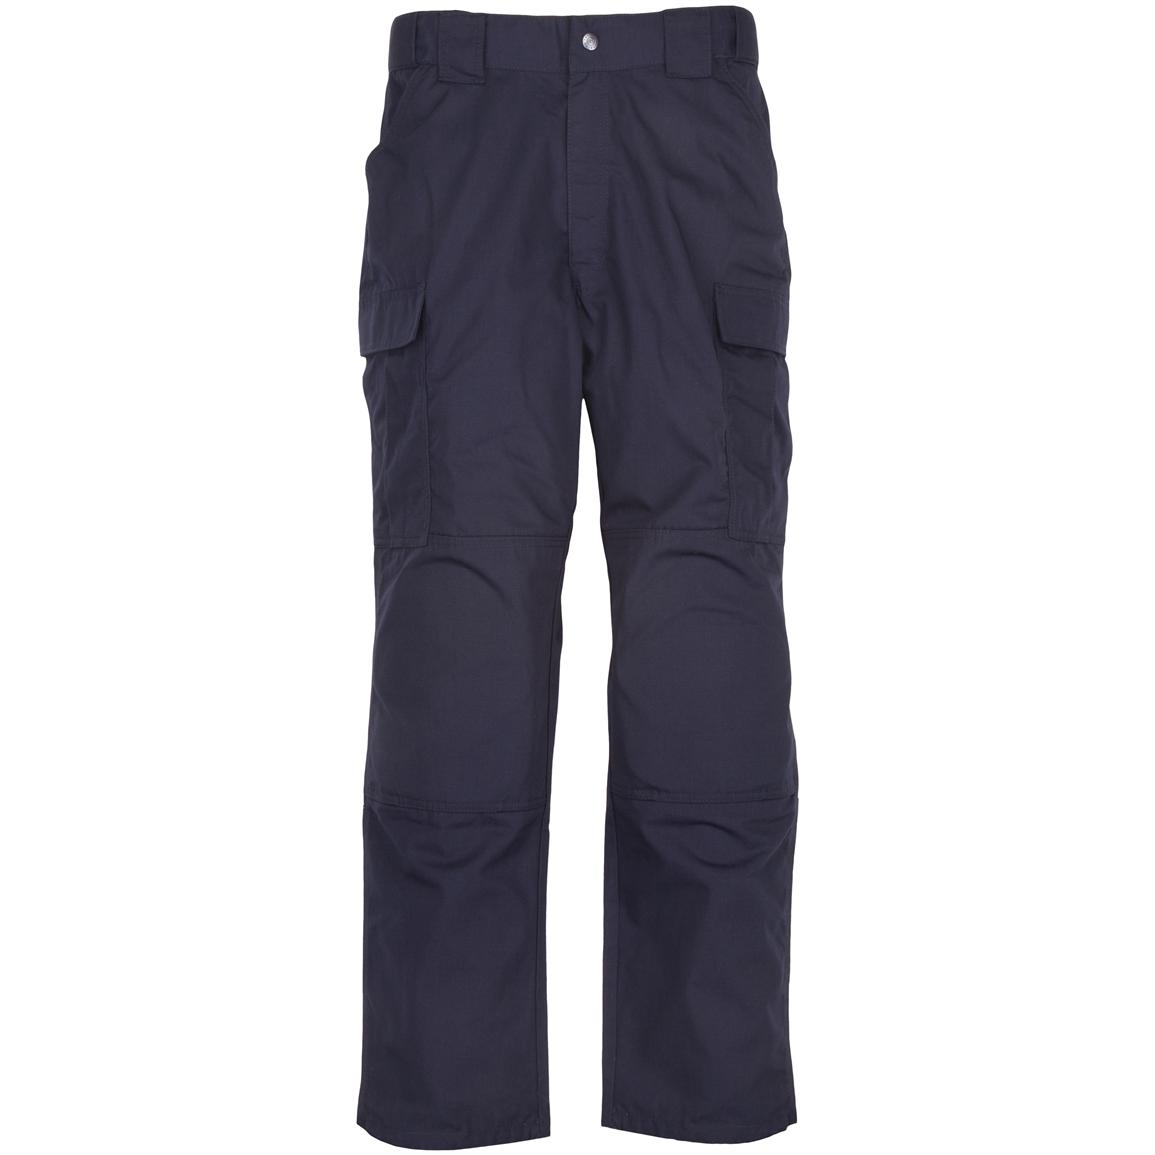 Men's 5.11 Tactical® Ripstop TDU® Pants, Dark Navy